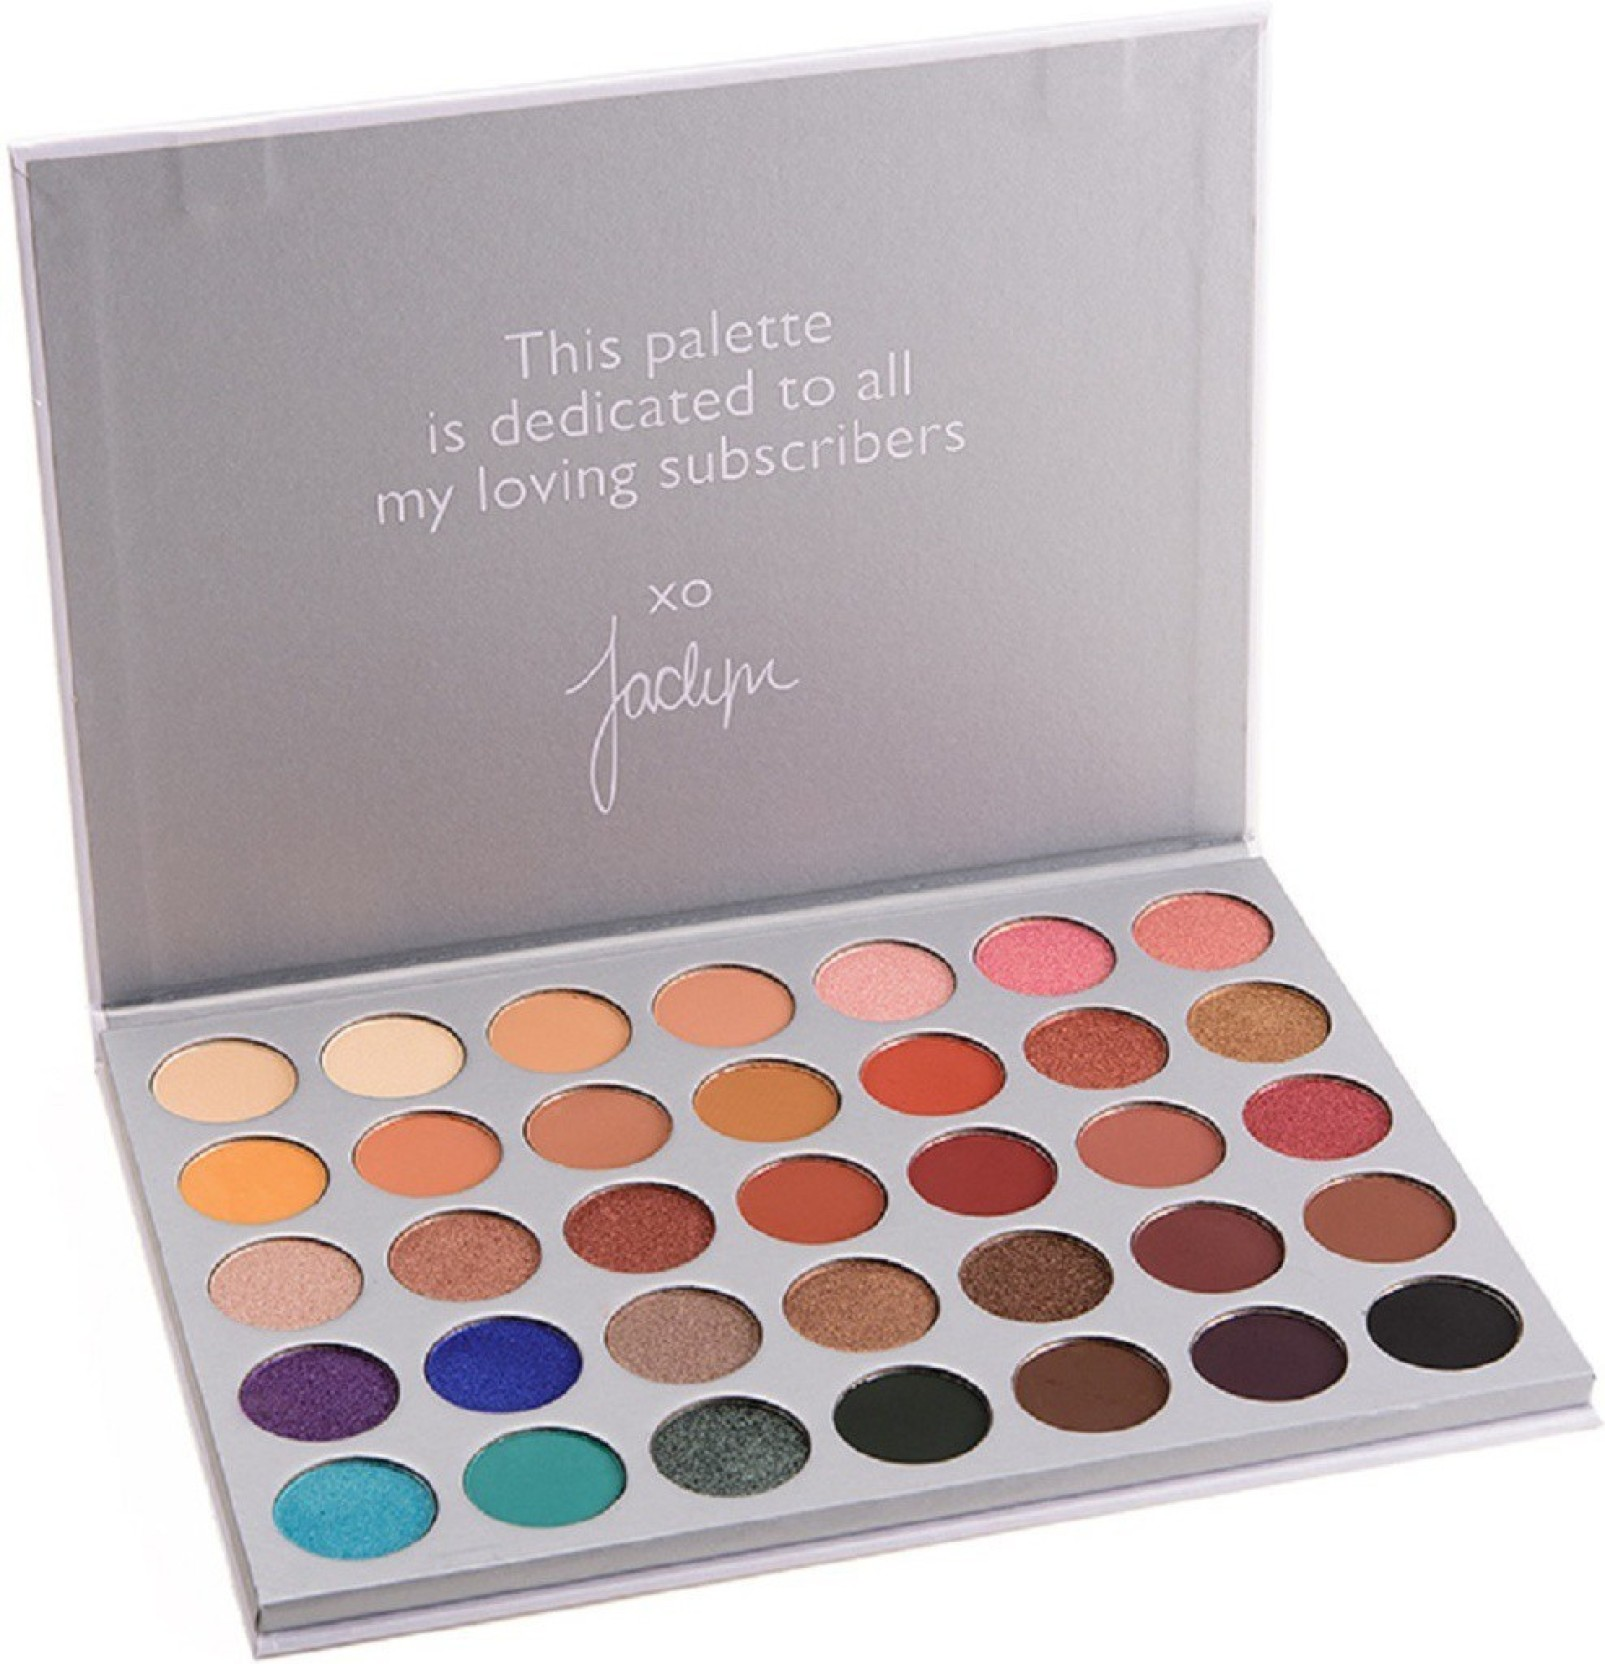 Morphe Jaclyn Hill Palette 100 G Price In India Buy Eye Shadow Just Miss 223 Add To Cart